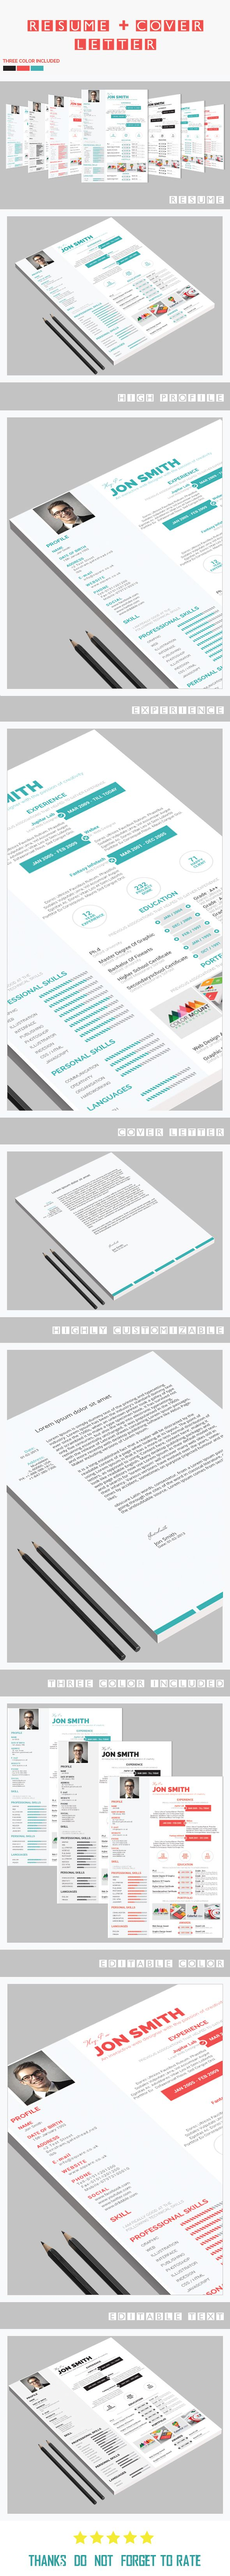 a great total package with a creative resume cover letter design for